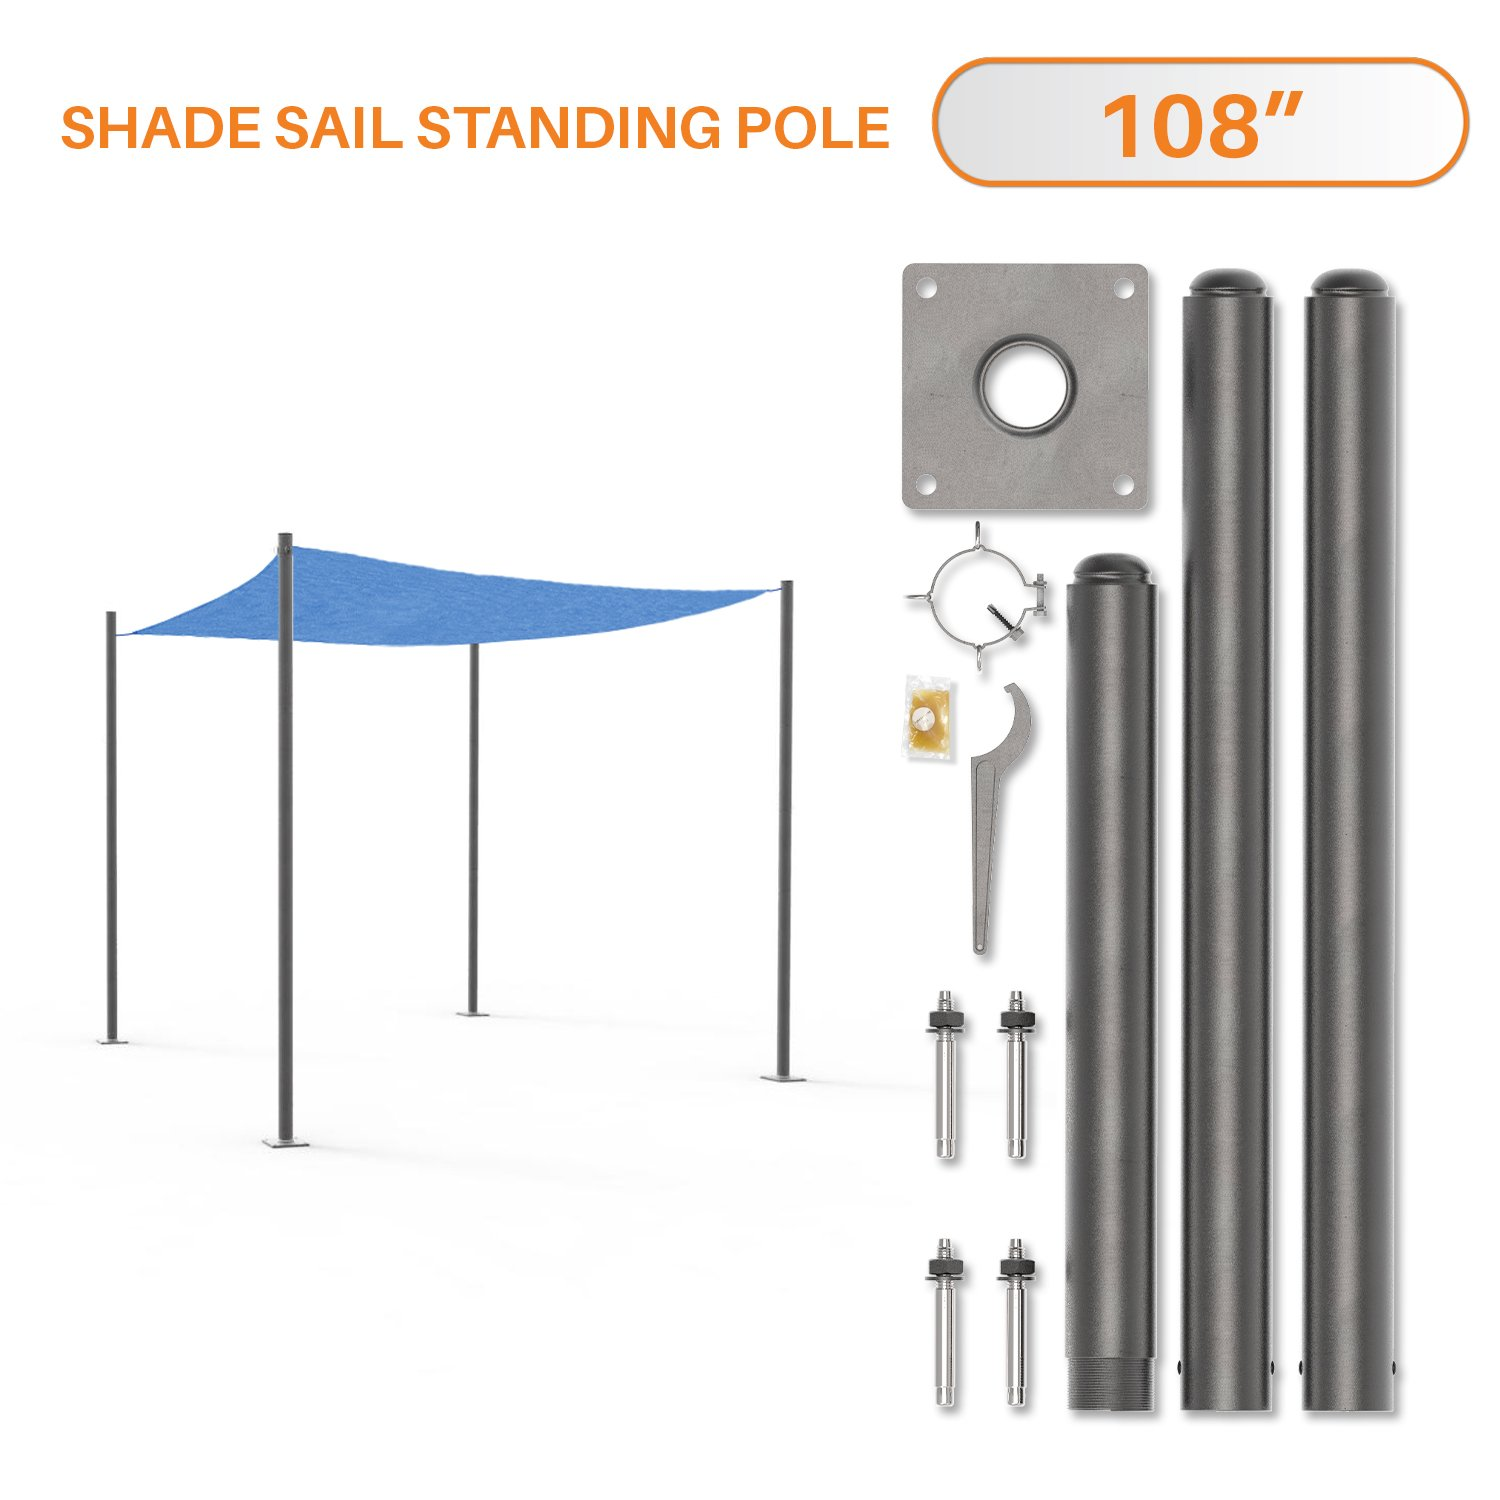 Sunshades Depot 9' Feet Tall (108'') Sun Shade Sail Pole Stand Post Heavy-Duty Awning Canopy Support Poles Space Grey Steel Fence Corner Post